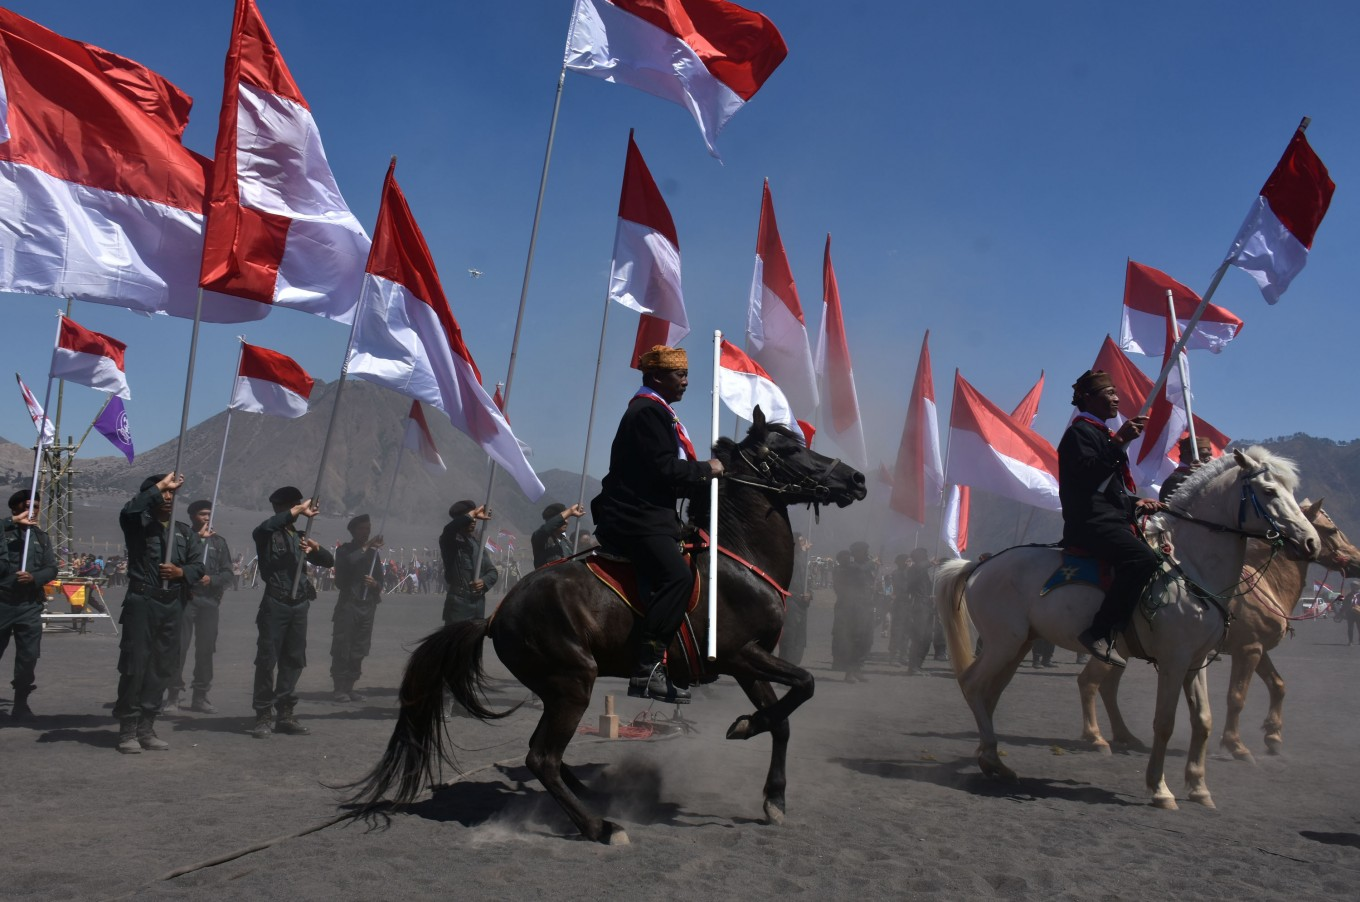 To attract the attention of a bigger crowd, a flag ceremony was held before raising the flag.